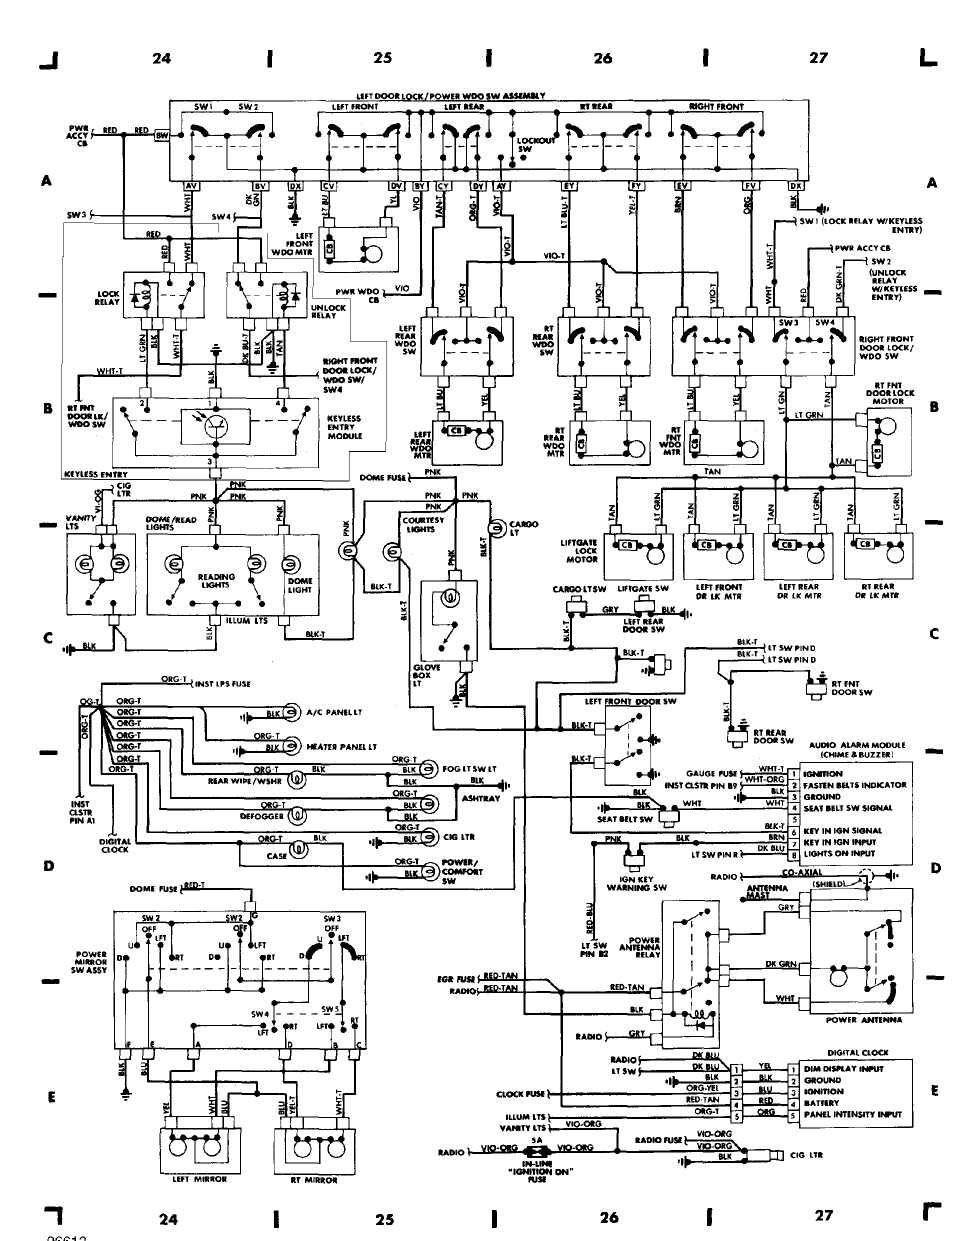 wiring_diagrams_html_61f5e0ad wiring diagrams 1984 1991 jeep cherokee (xj) jeep 1991 jeep wrangler wiring schematic at webbmarketing.co